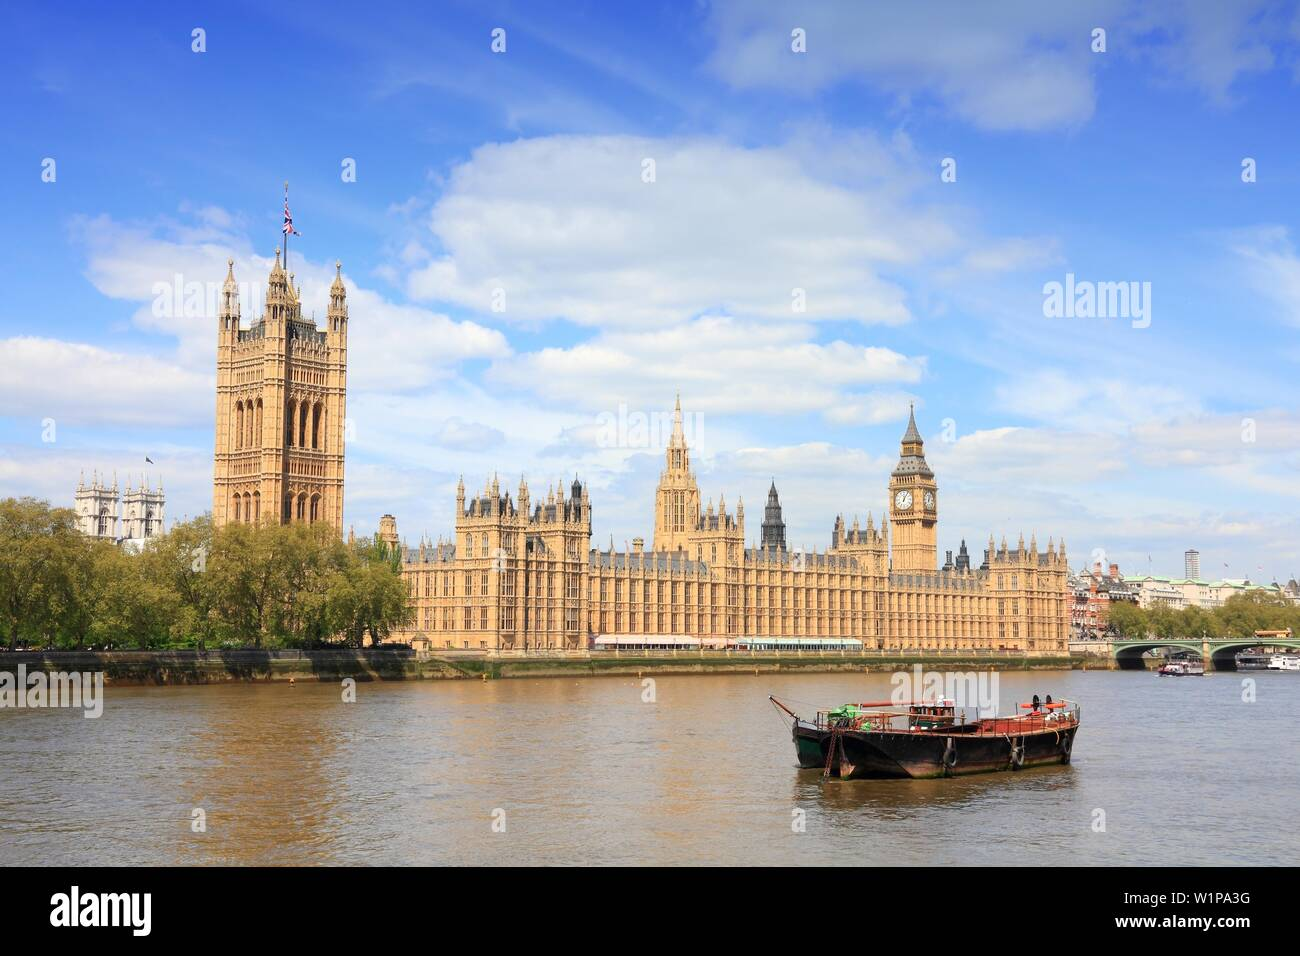 London, England - Palace of Westminster with Big Ben clock tower. - Stock Image